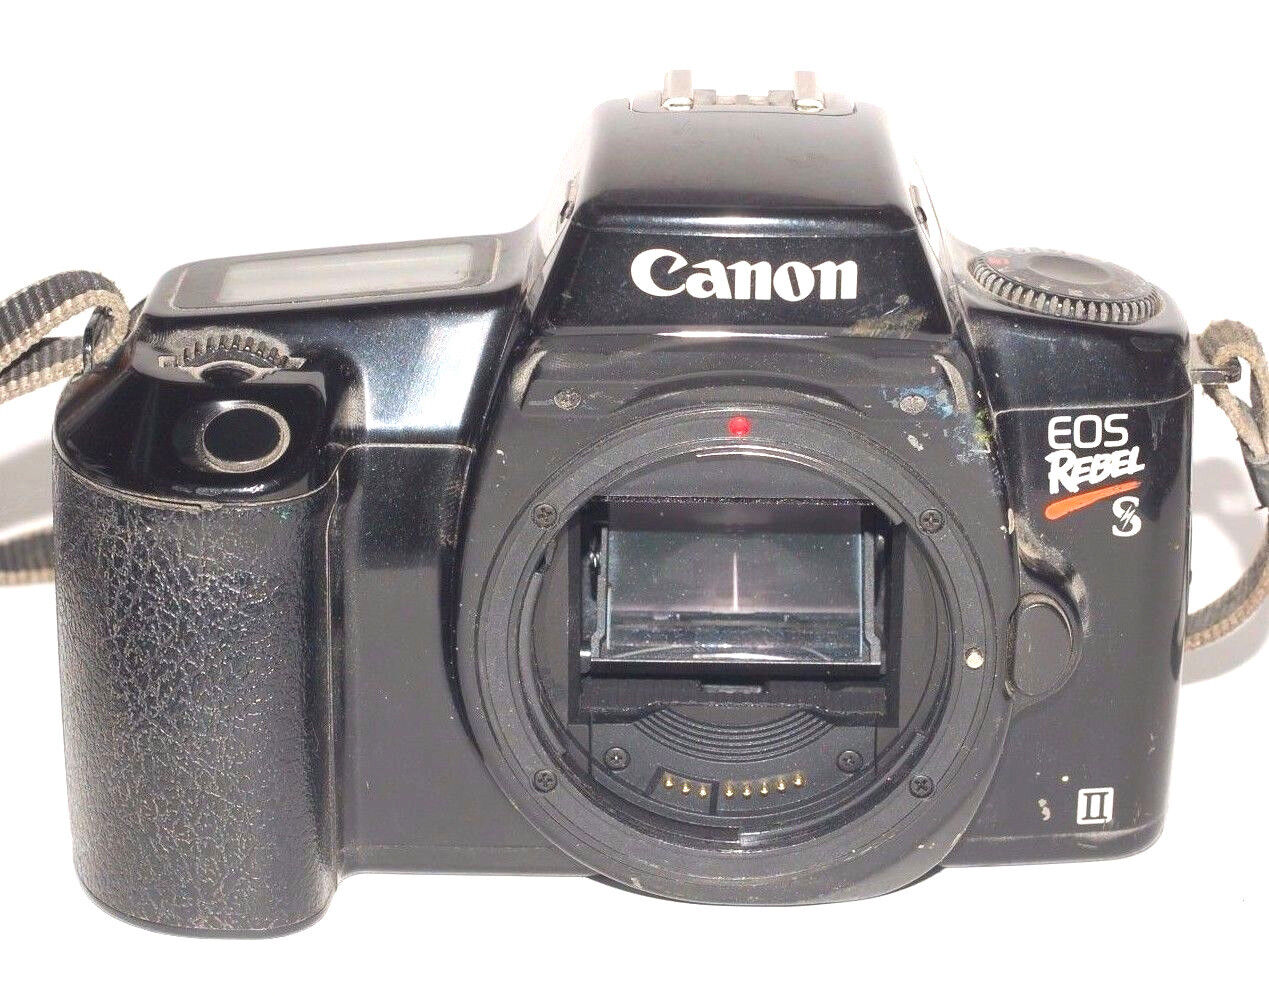 Canon Eos Rebel S Ii 35mm Film Camera Body Only Untested Ebay